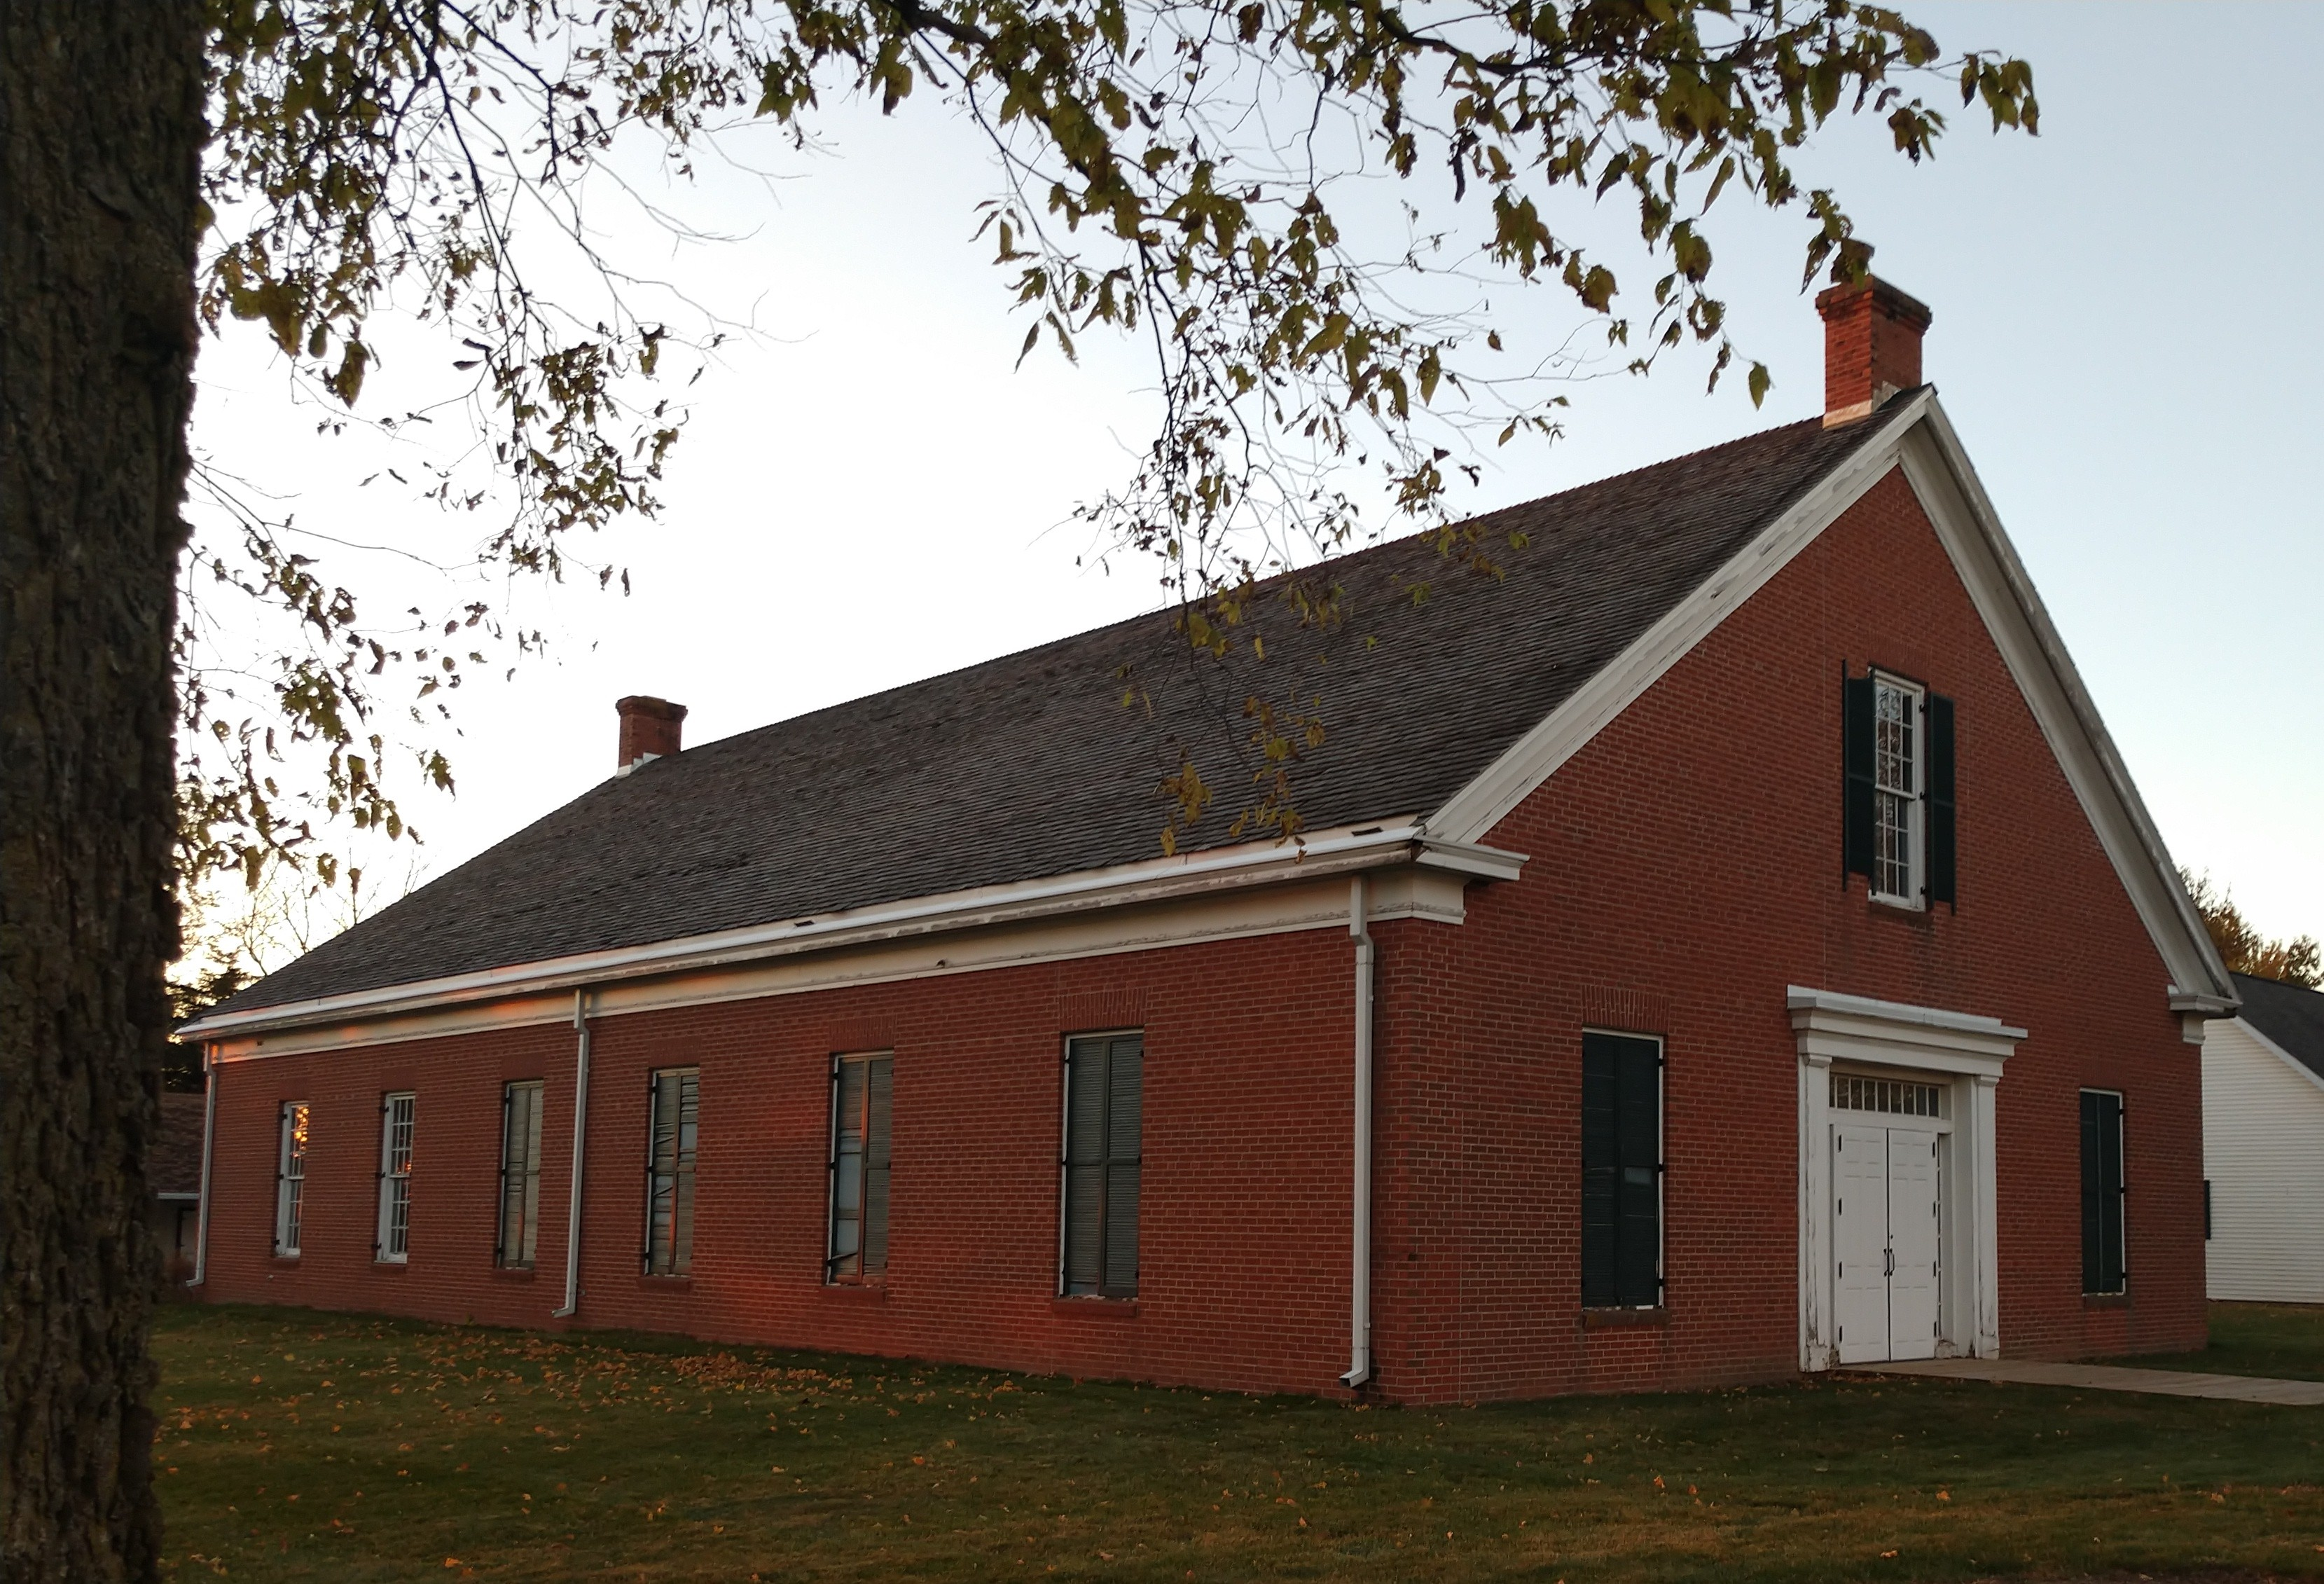 The Bishop Hill State Museum